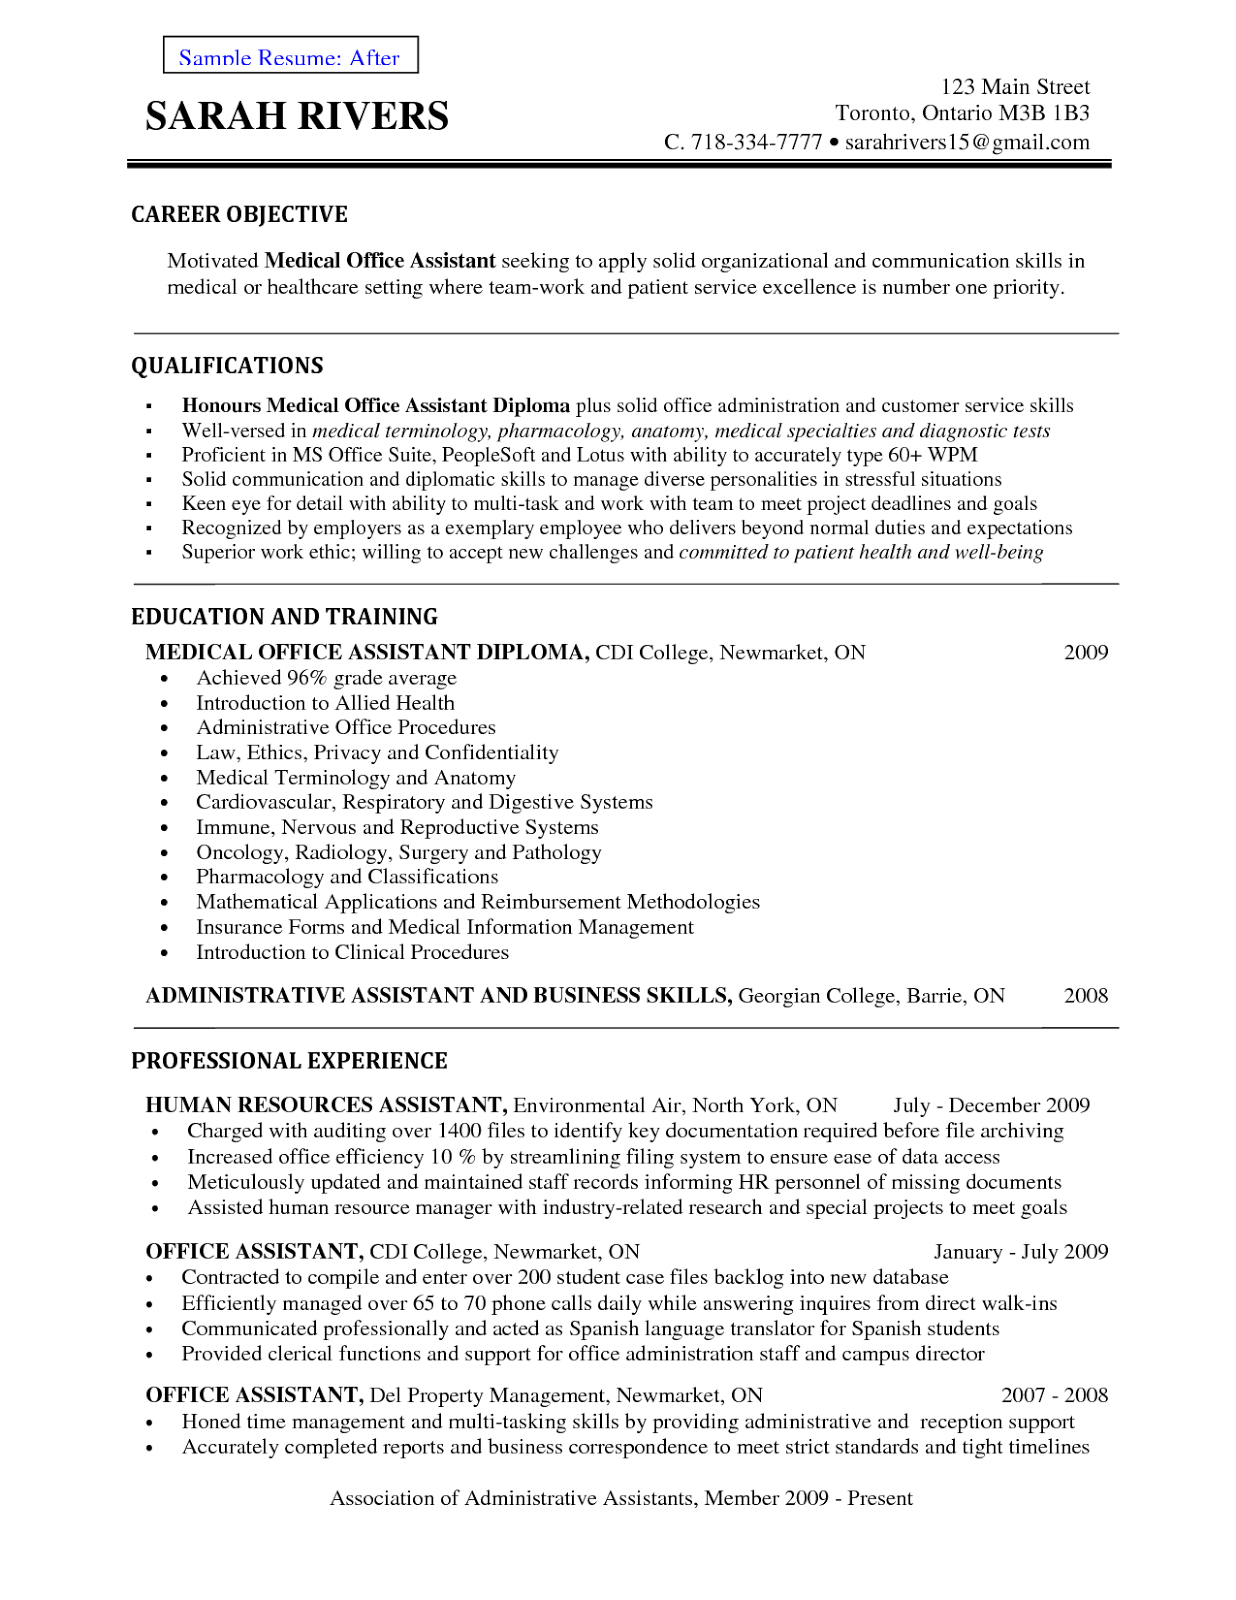 Resume Examples Cover Letter Medical Technologist Resume Template Nuclear  Medicine Medical Technician Resume  Medical Technician Resume